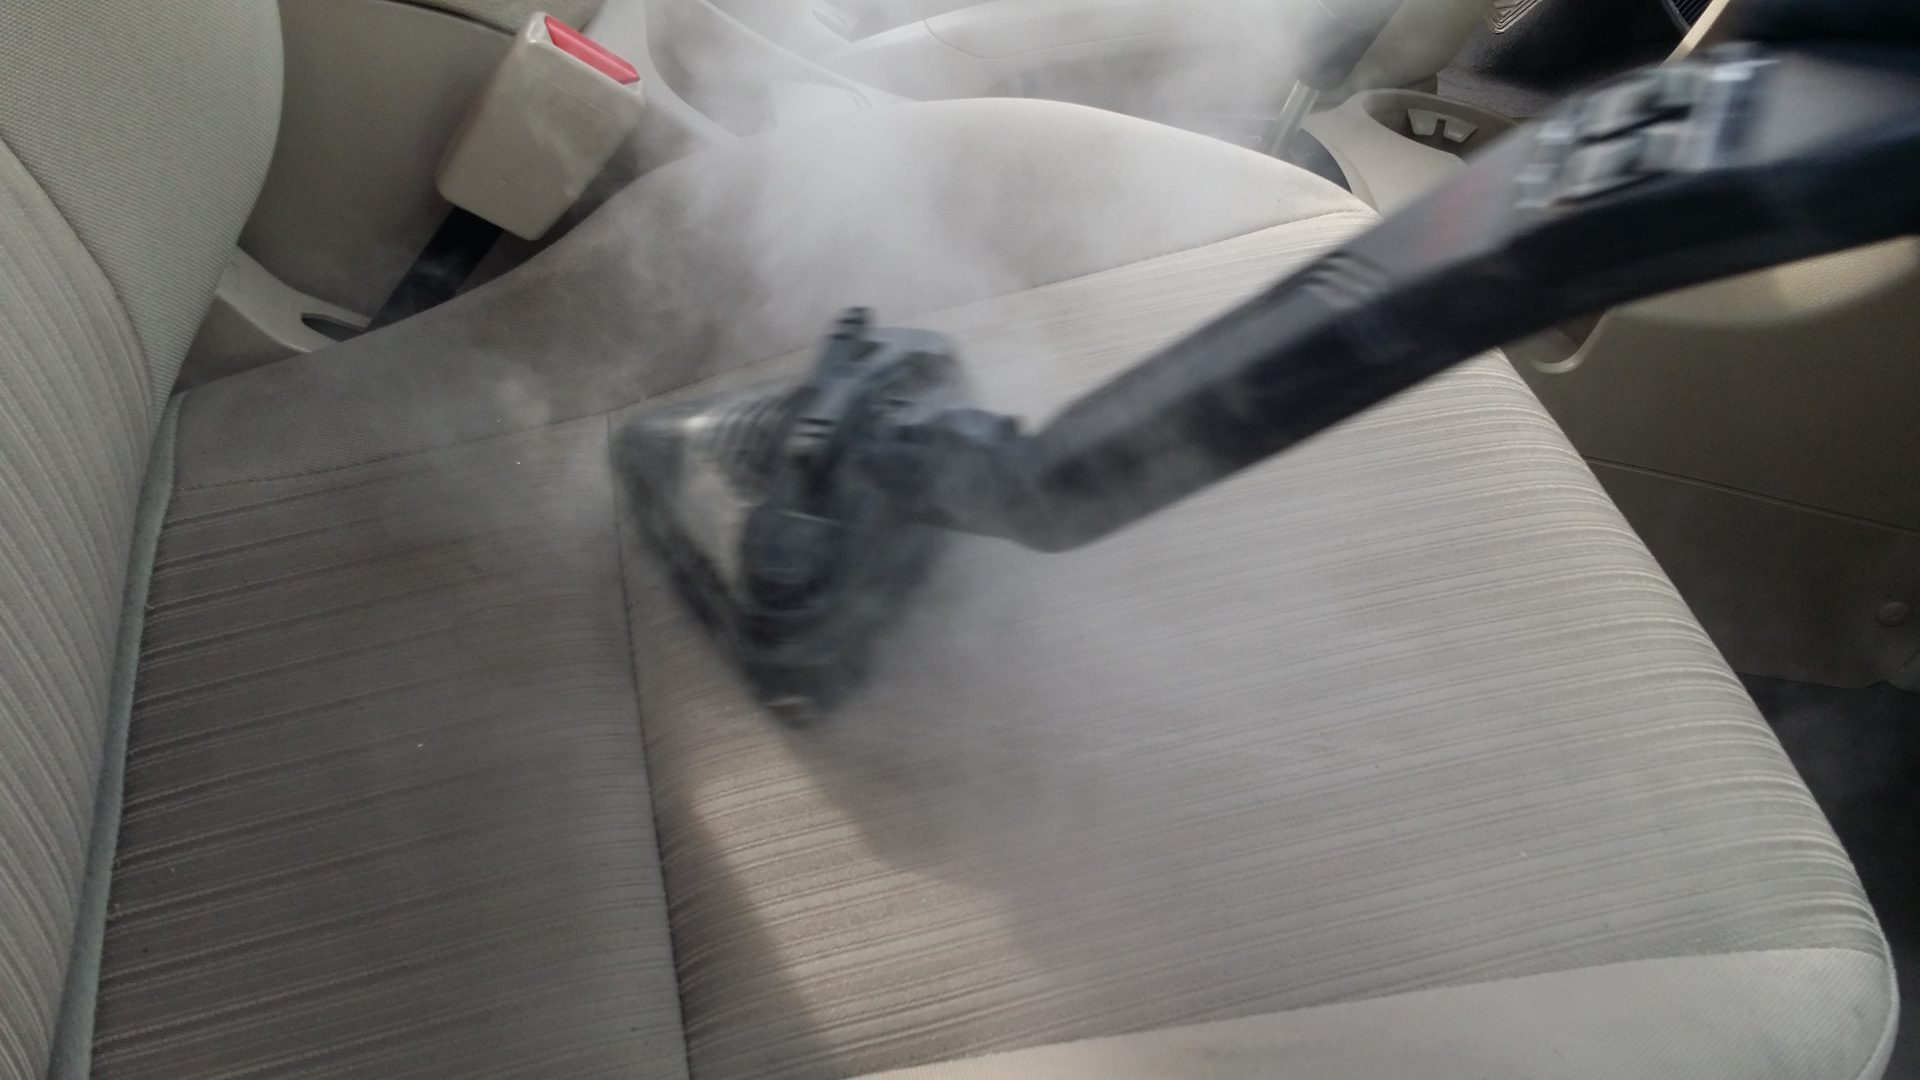 our interior or car the vehicle to steam day services a lot park during auto upholstery in spend clean it hawaii is kids driving carpet that time we work whether taking are of inevitable hawaiiautointeriorcleaning regular cleaning